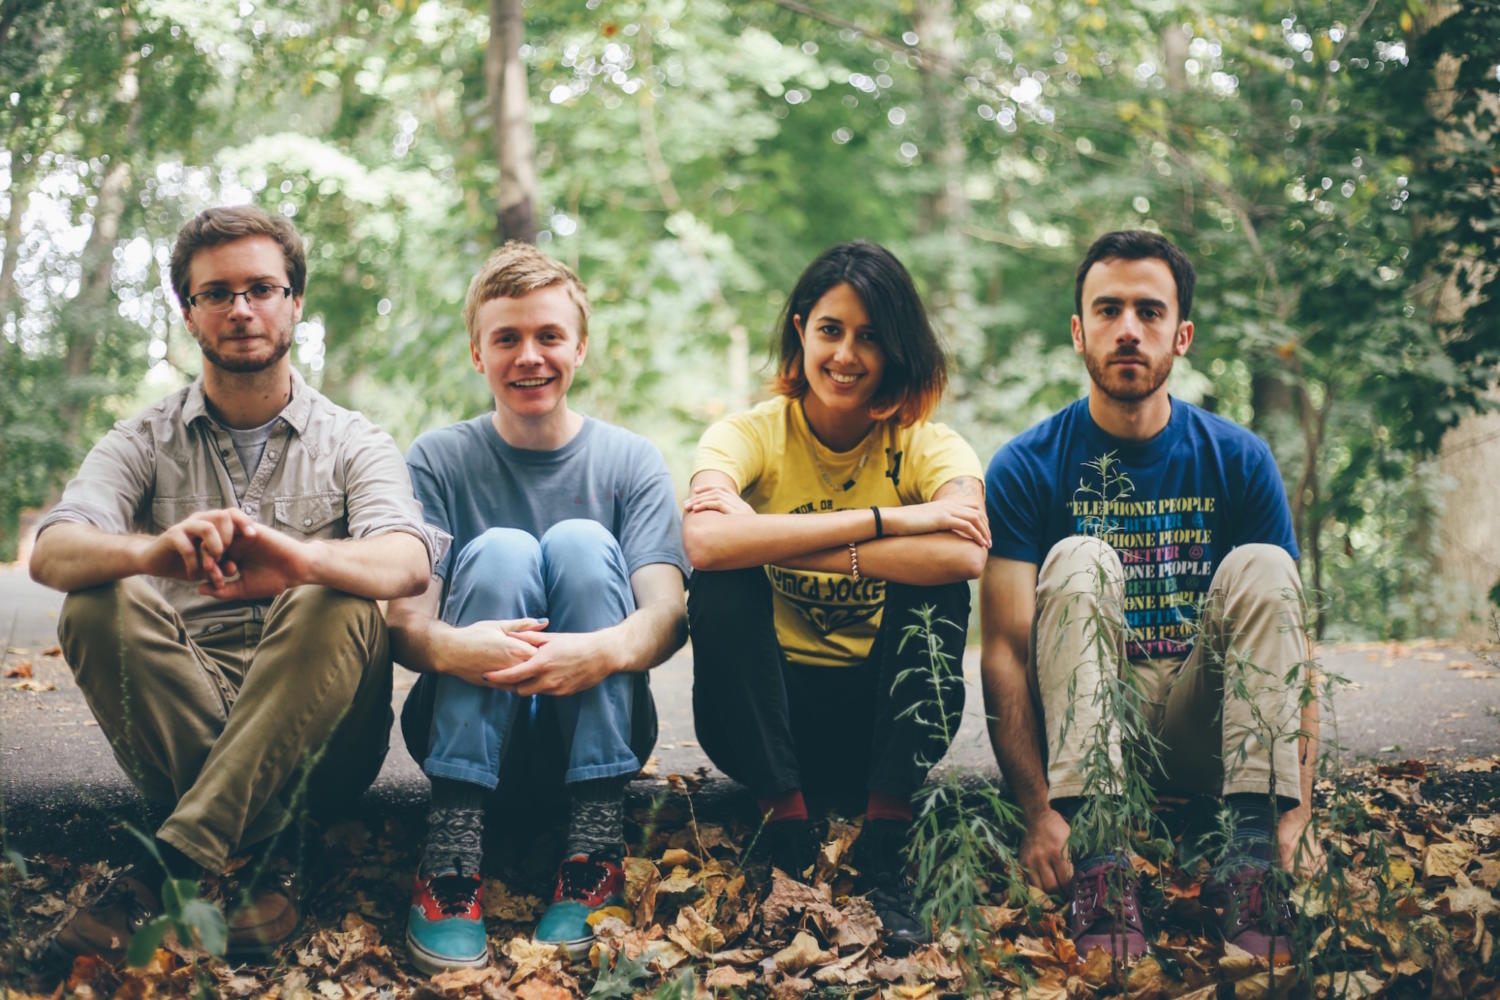 Pinegrove cancel US tour after allegations of 'sexual coercion'